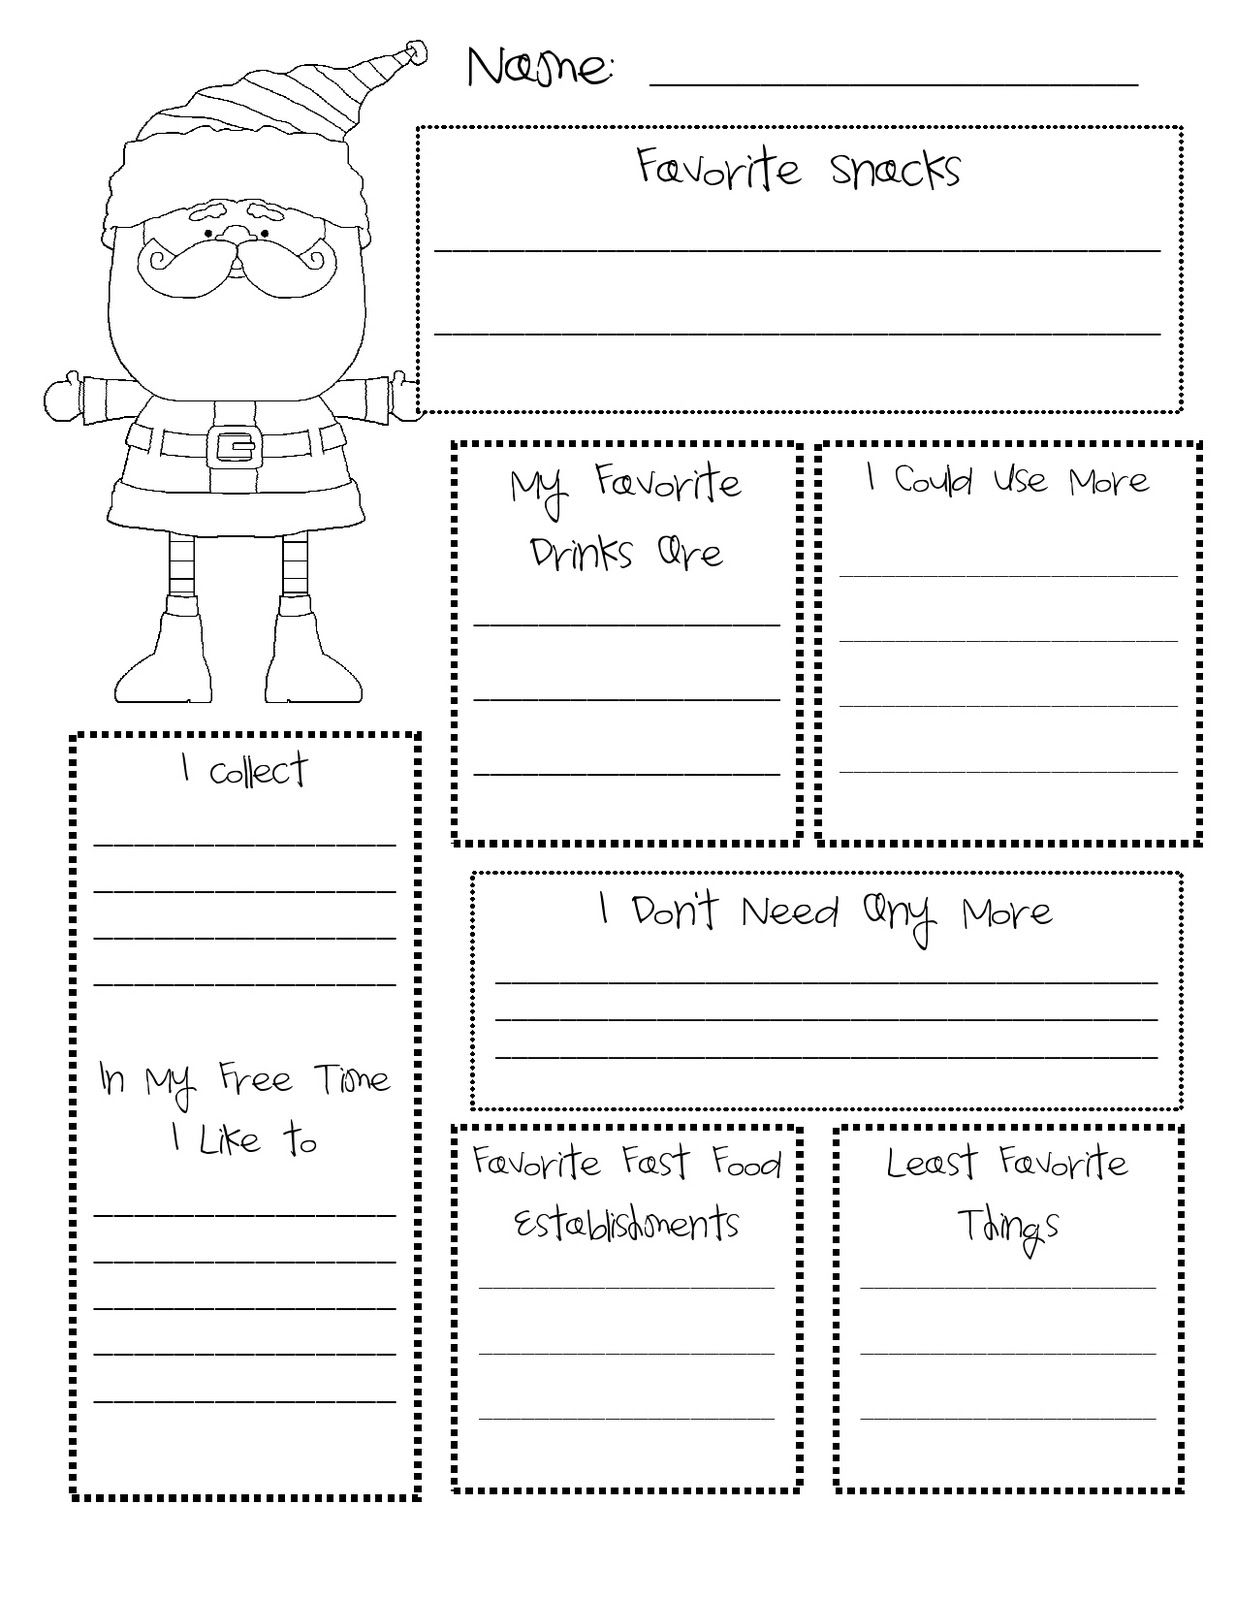 Clean image in secret santa wish list printable